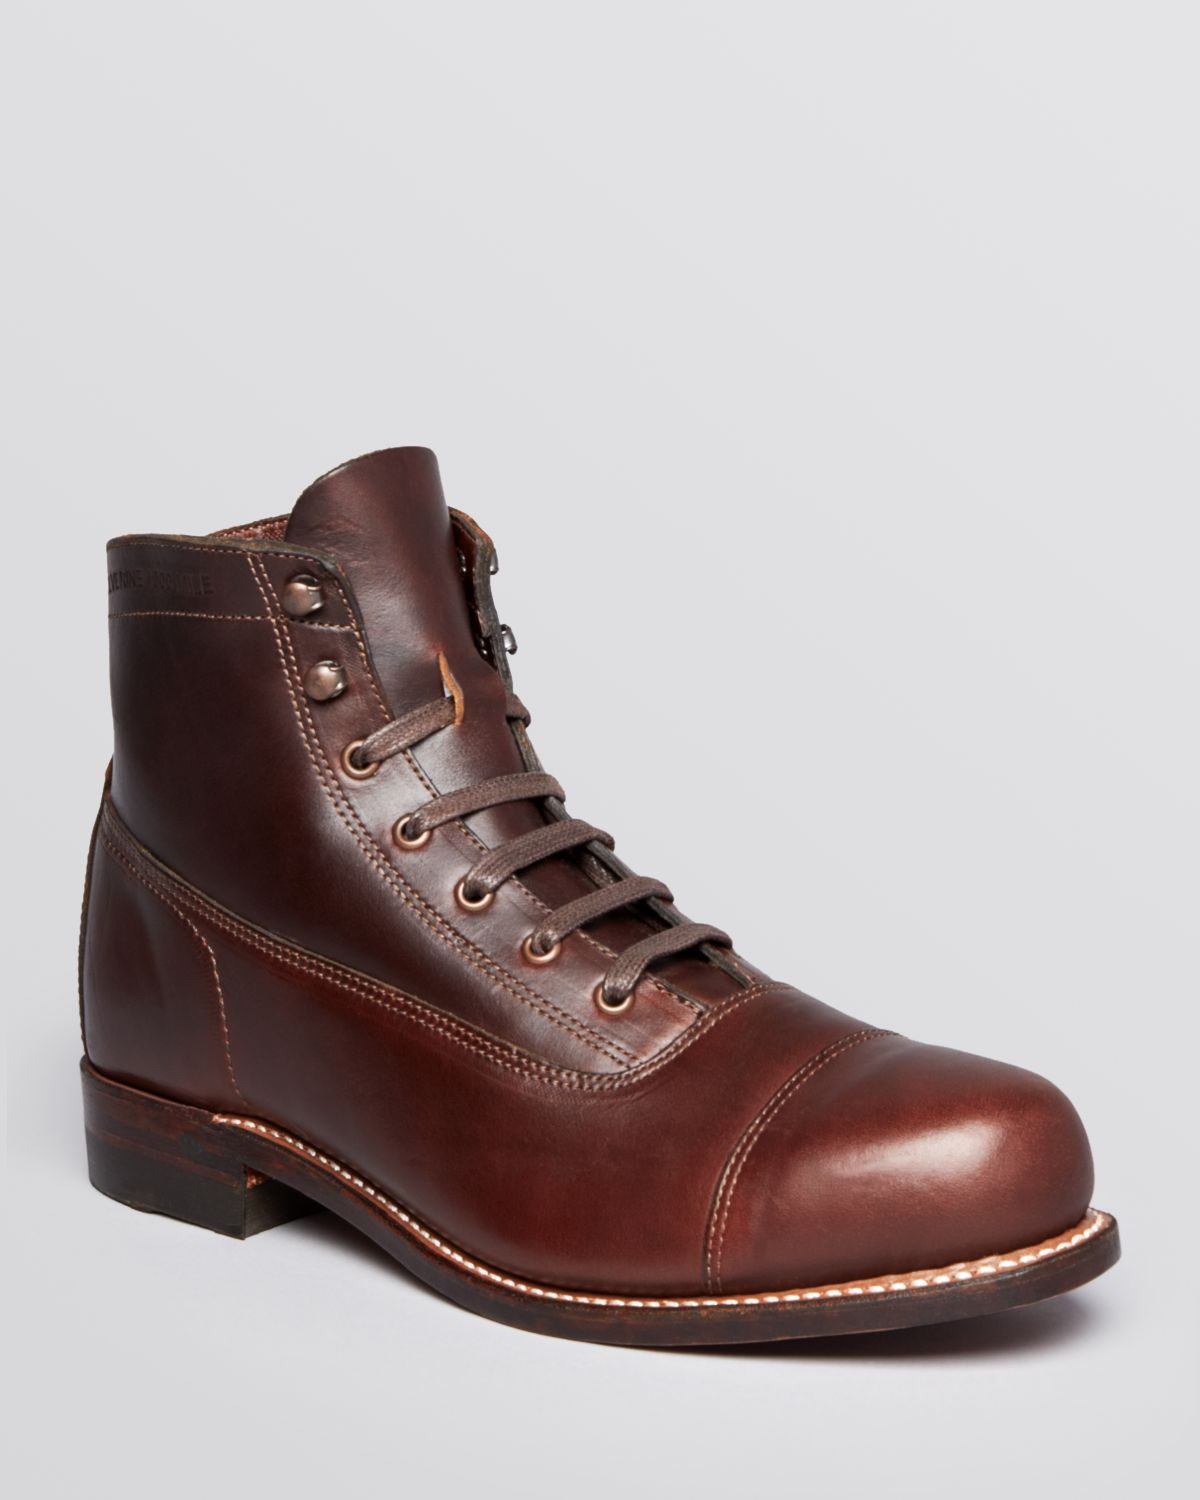 Lyst - Wolverine Rockford Cap Toe Boots in Brown for Men 79282265fc2